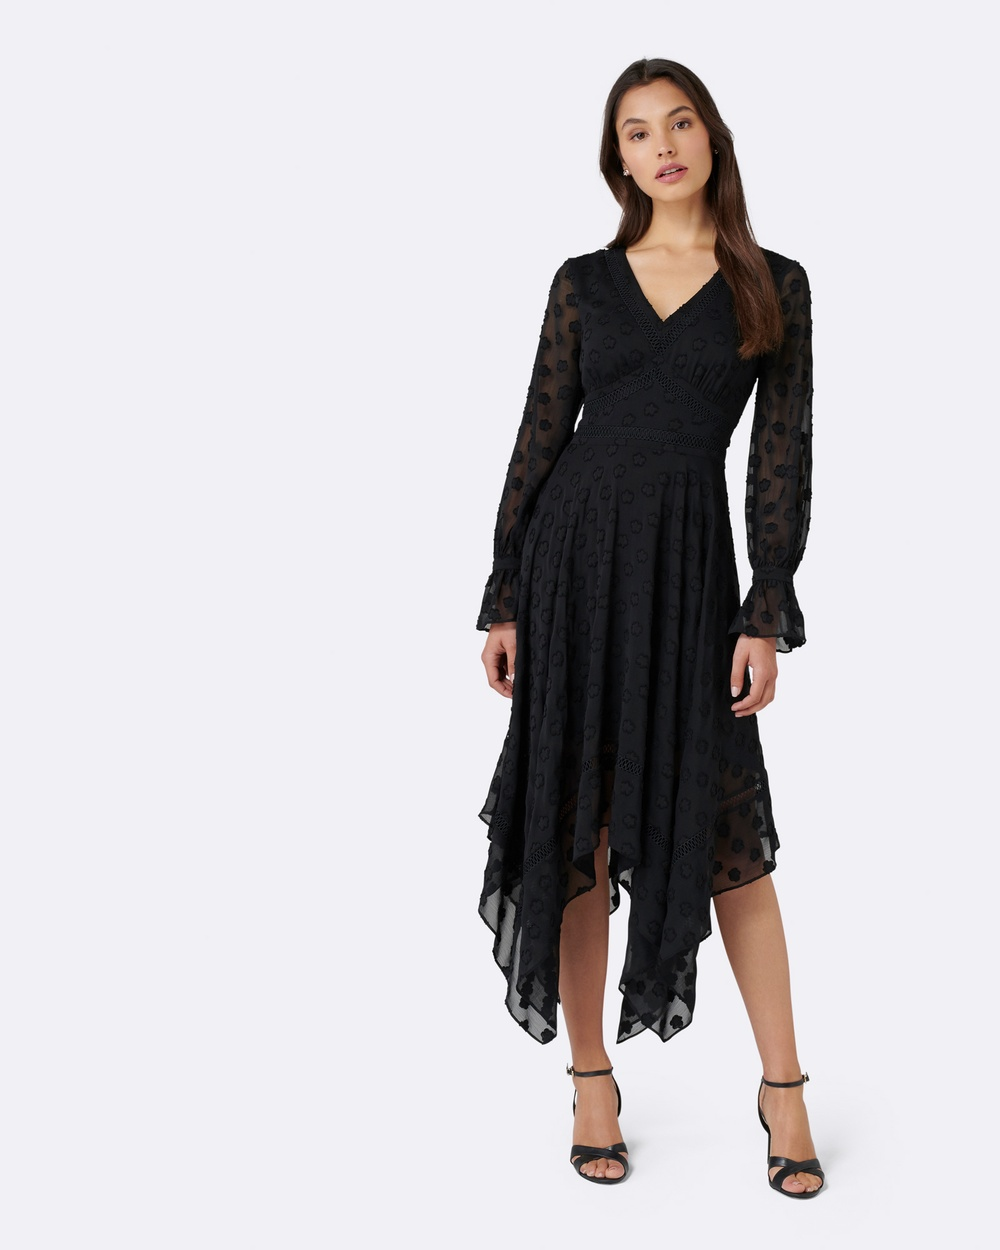 Forever New Misha Asymmetric Dobby Dress Dresses Black Misha Asymmetric Dobby Dress